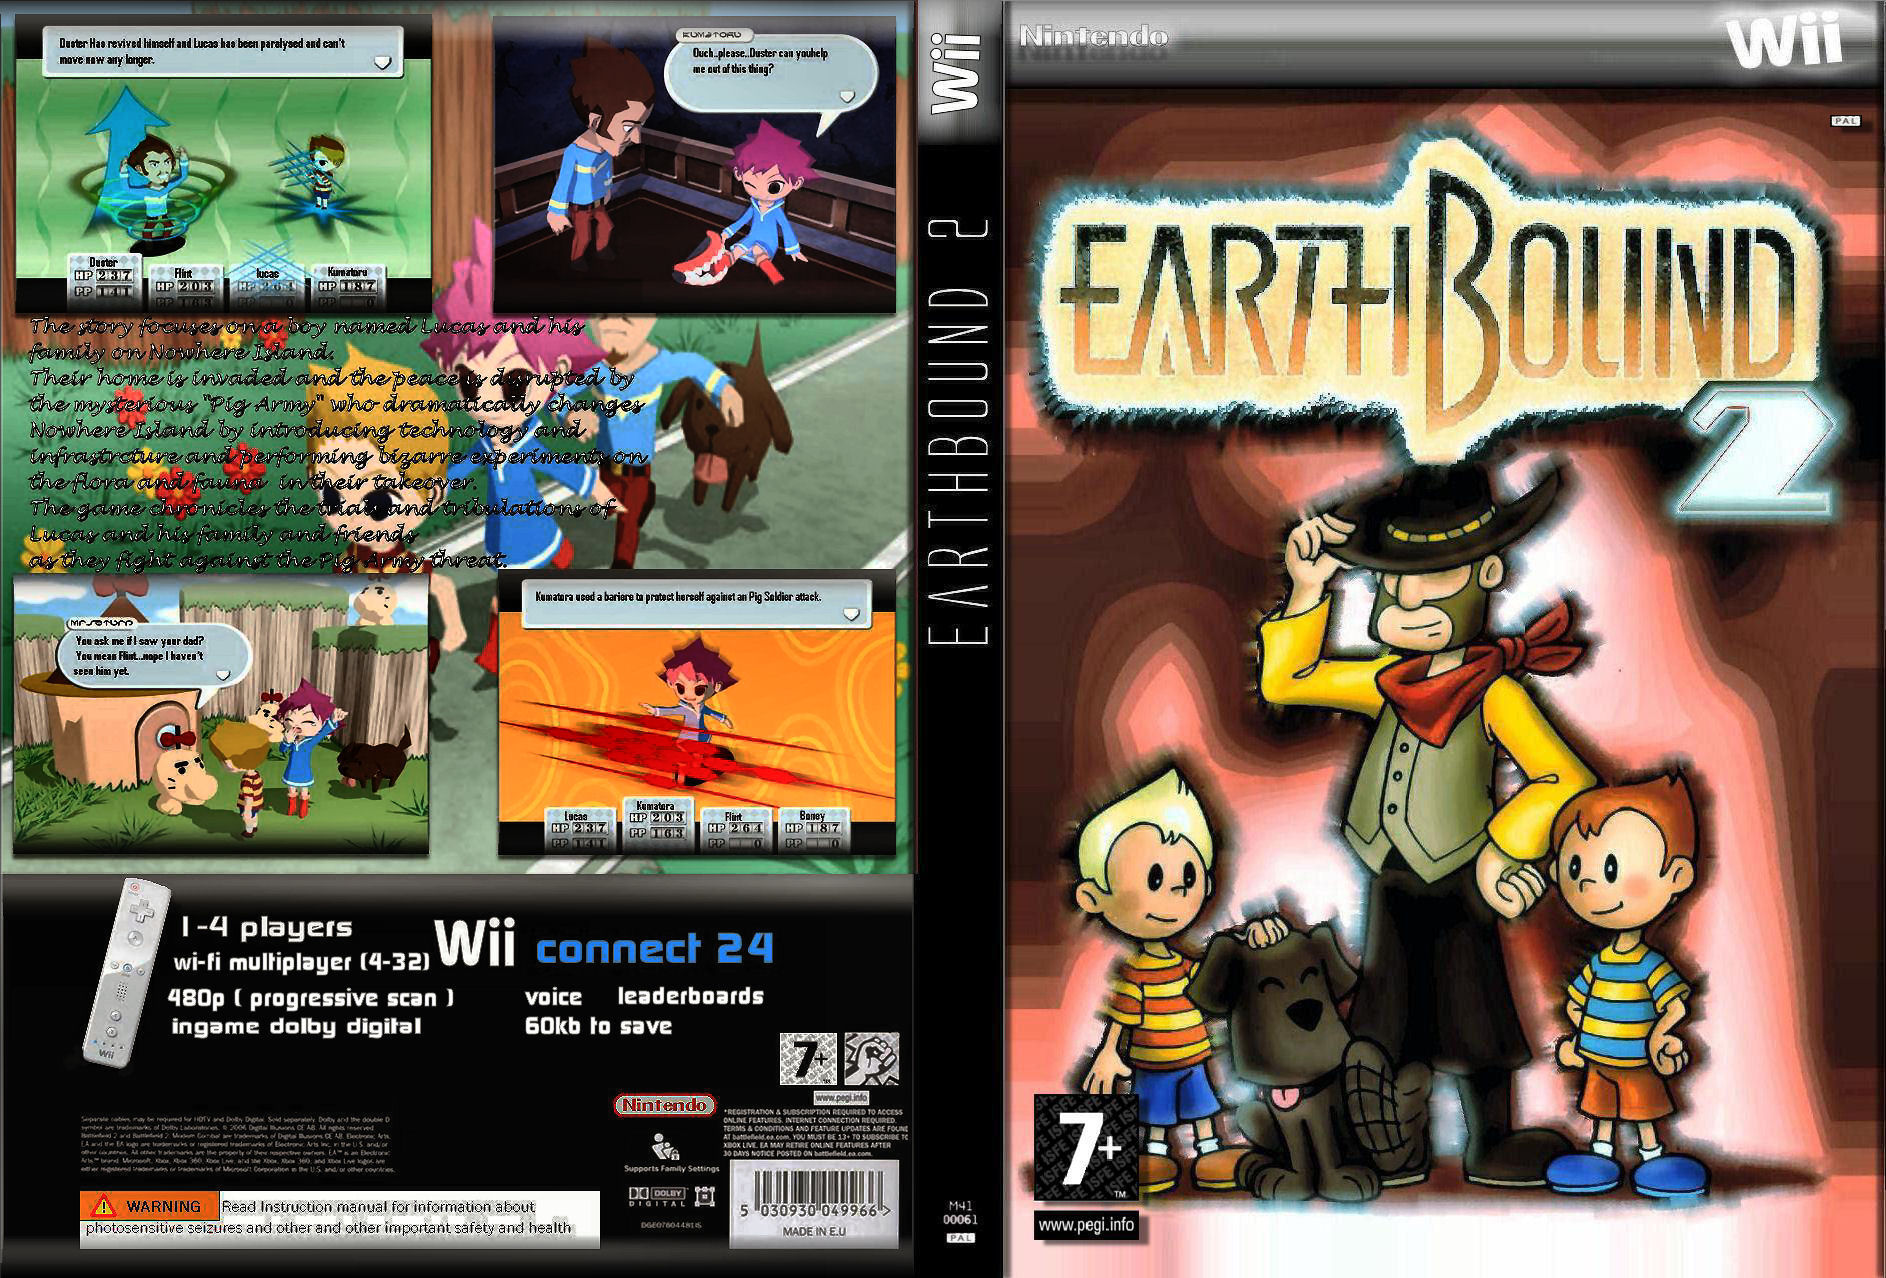 Earthbound 2 Wii Box Art Cover By TwilightMystics